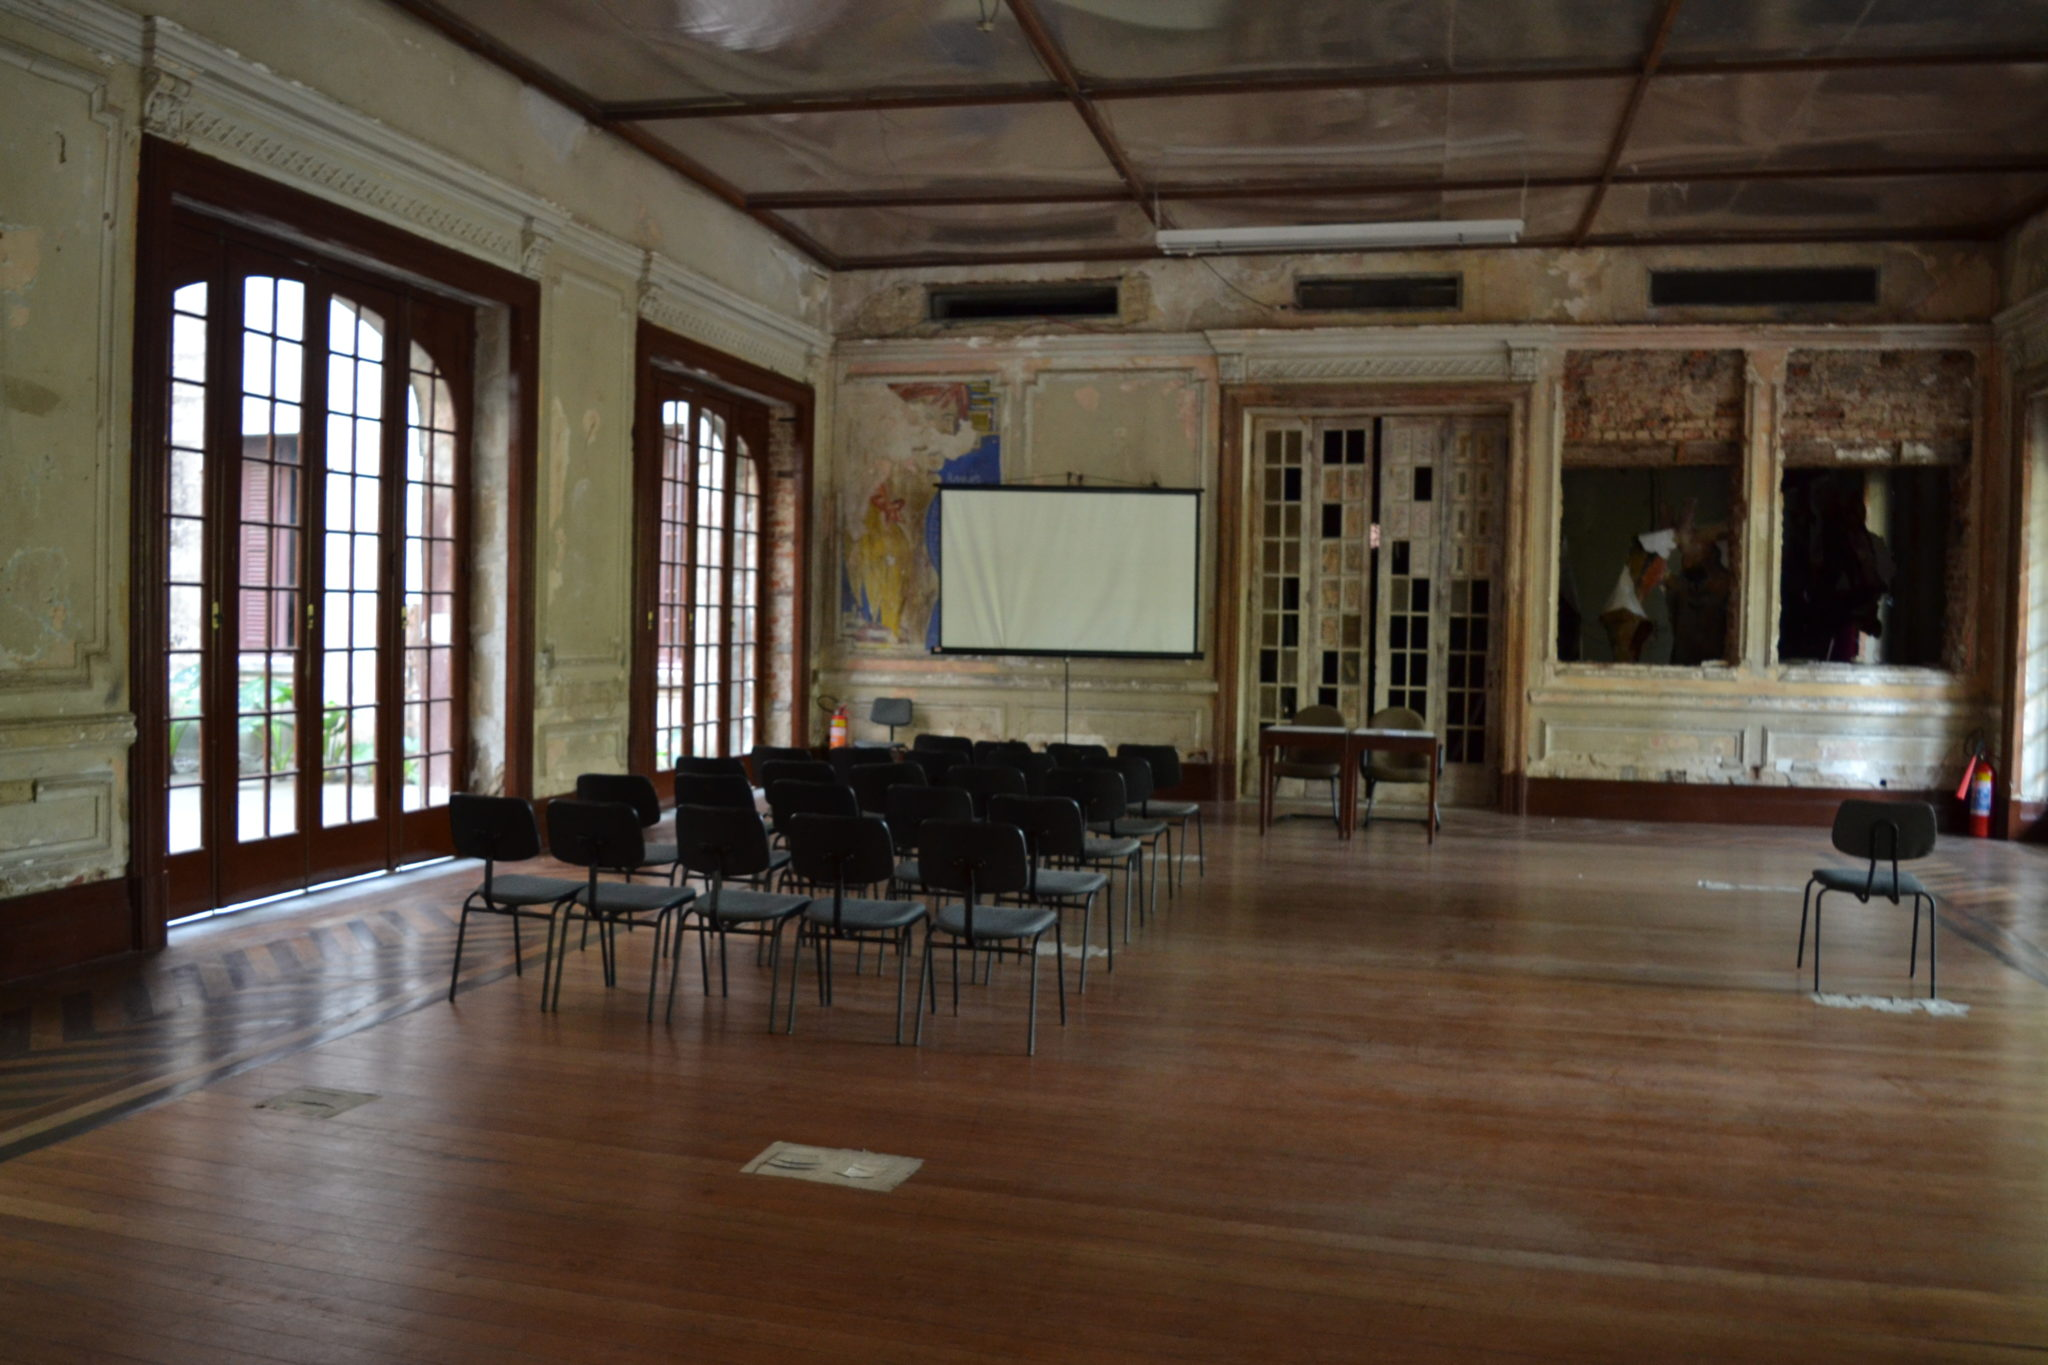 An old, empty meeting room with black chairs and a projector screen.